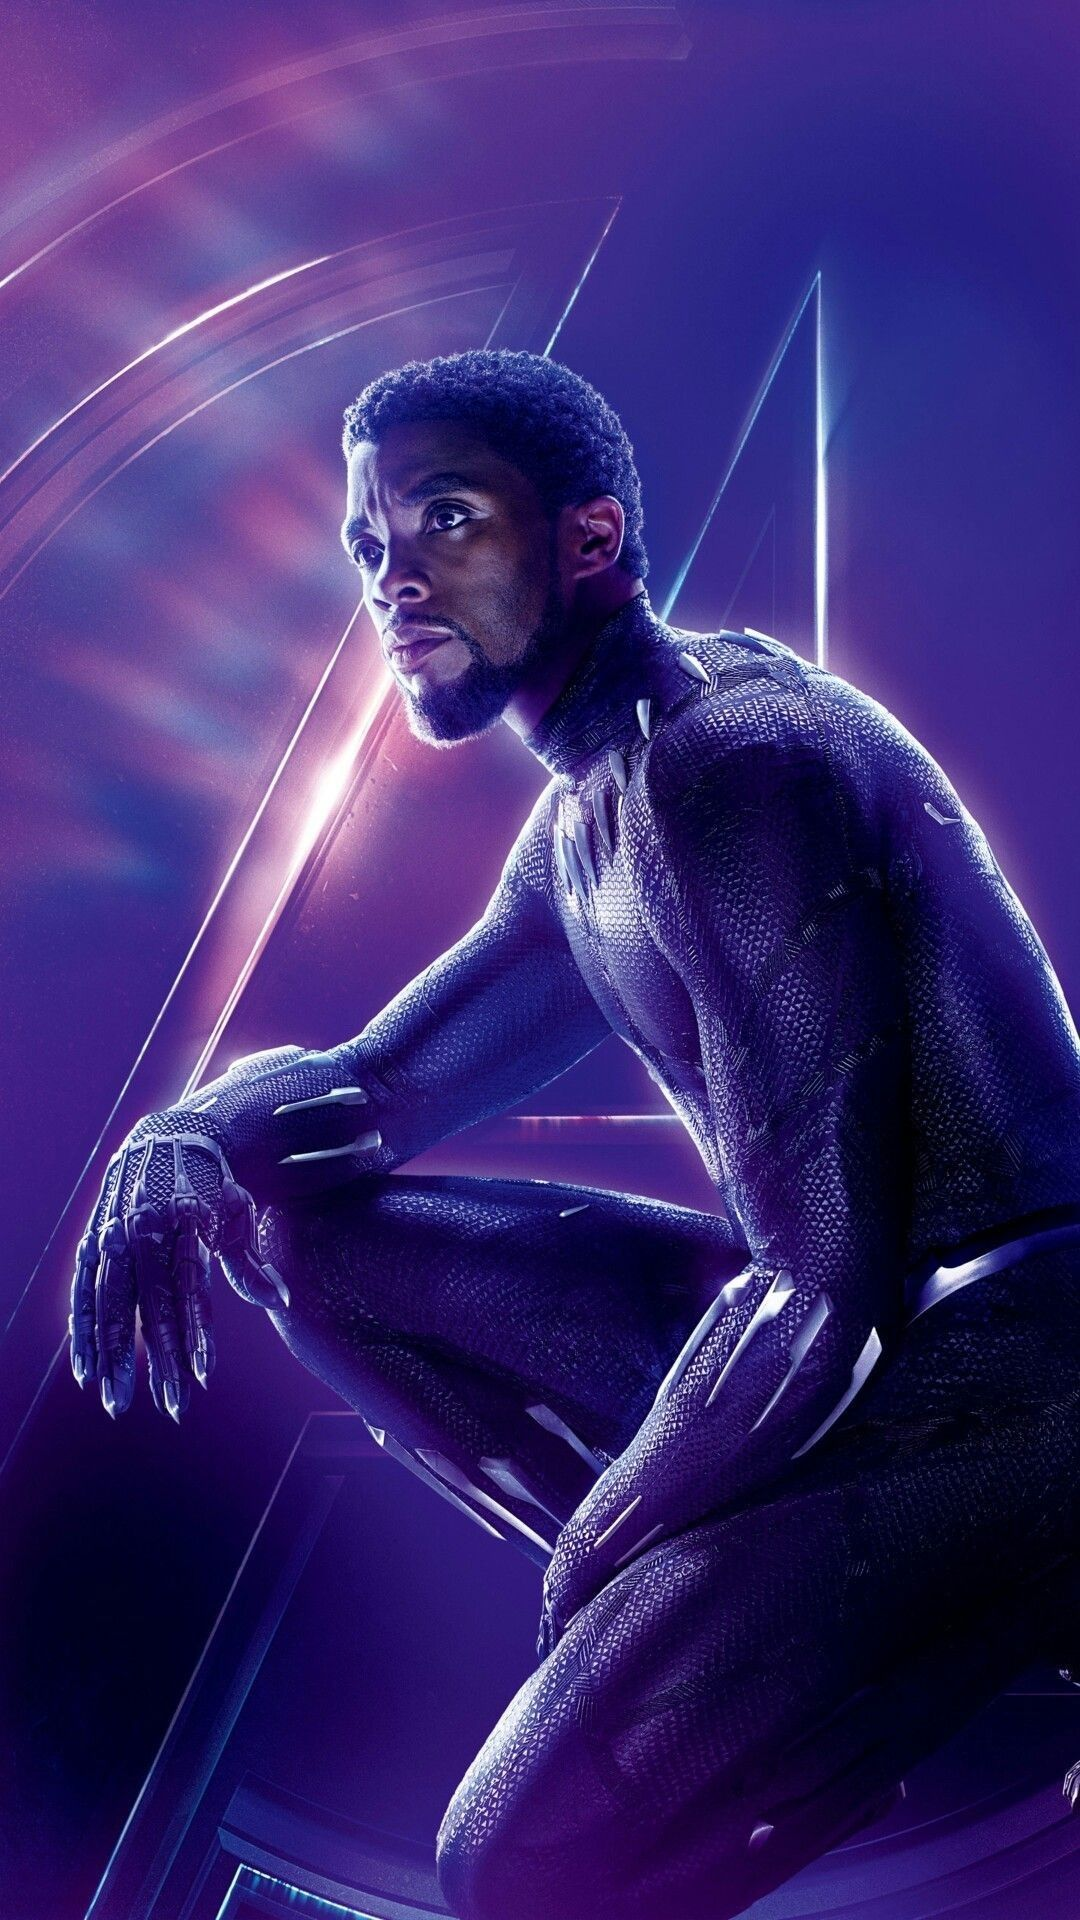 Avengers infinity war jrs Black panther t'challa | wallpapers | Pinterest